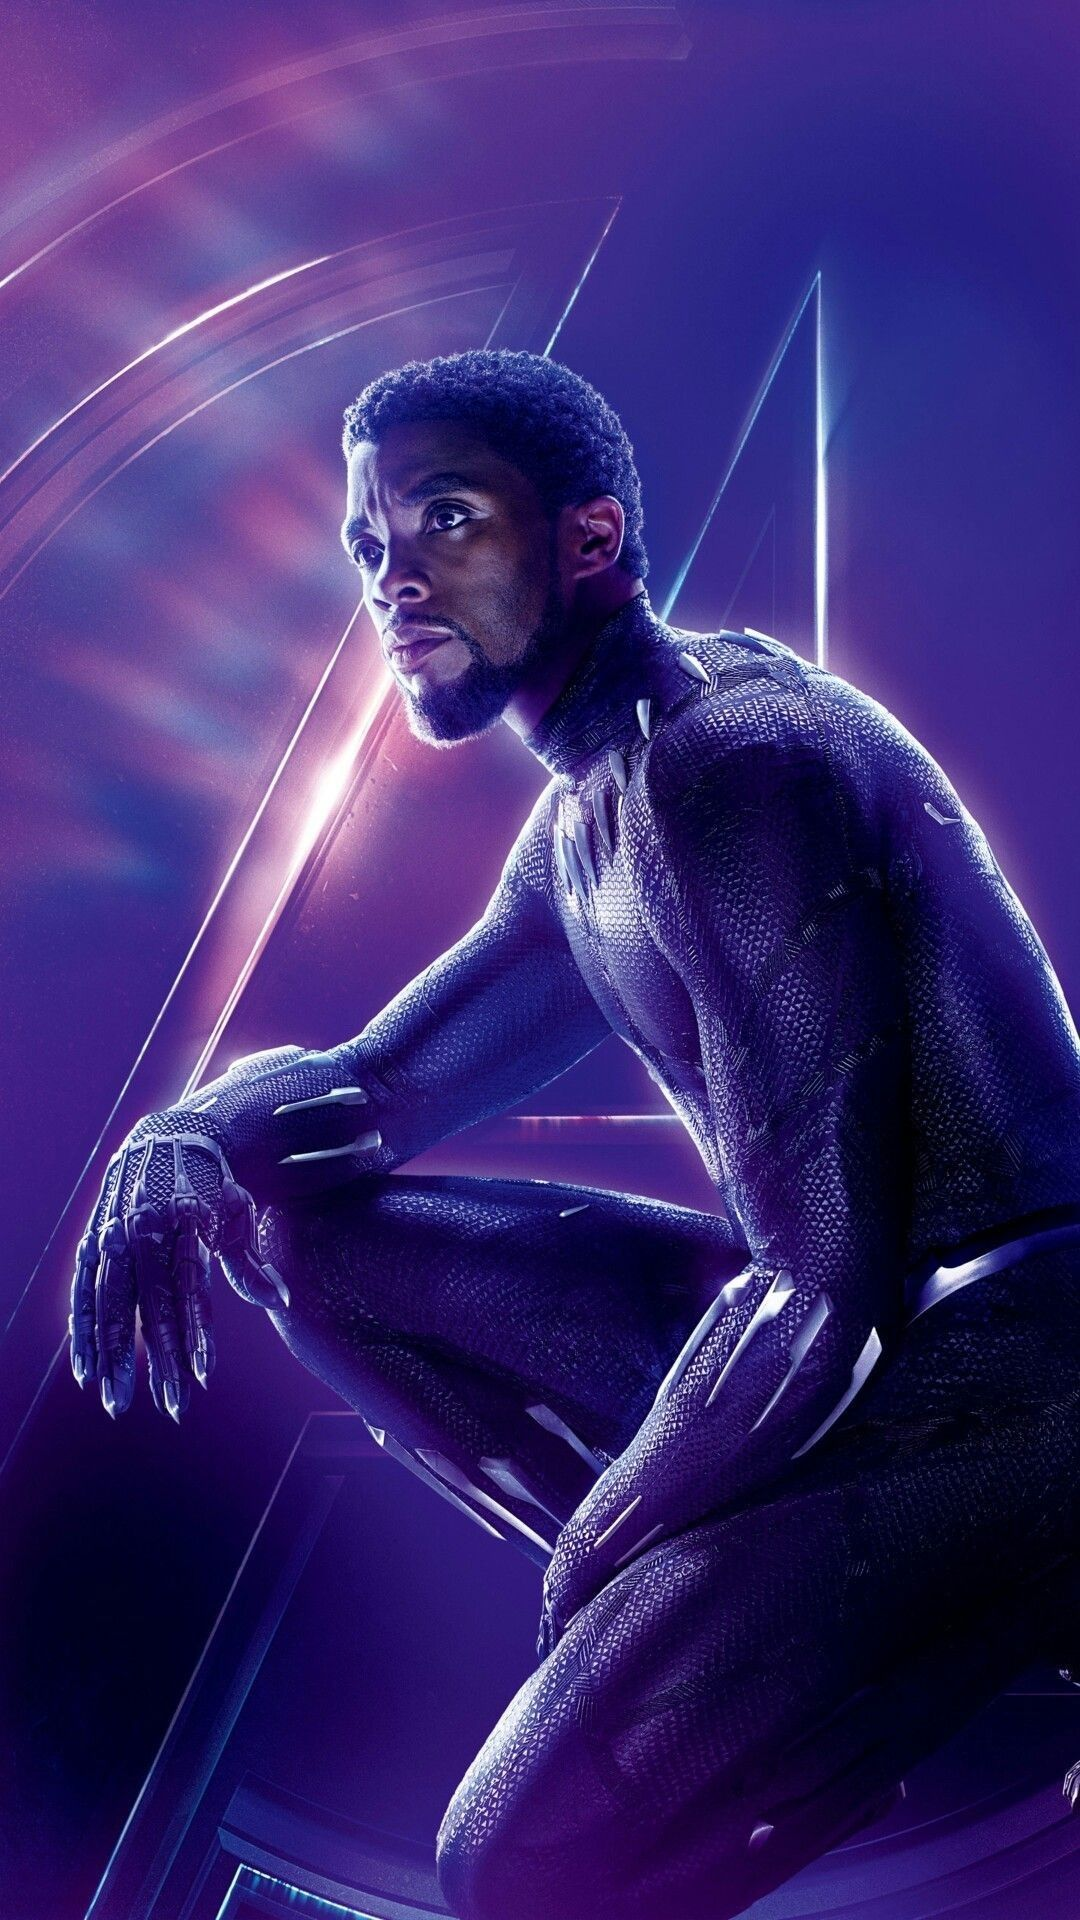 Avengers infinity war jrs Black panther t'challa | wallpapers | Pinterest